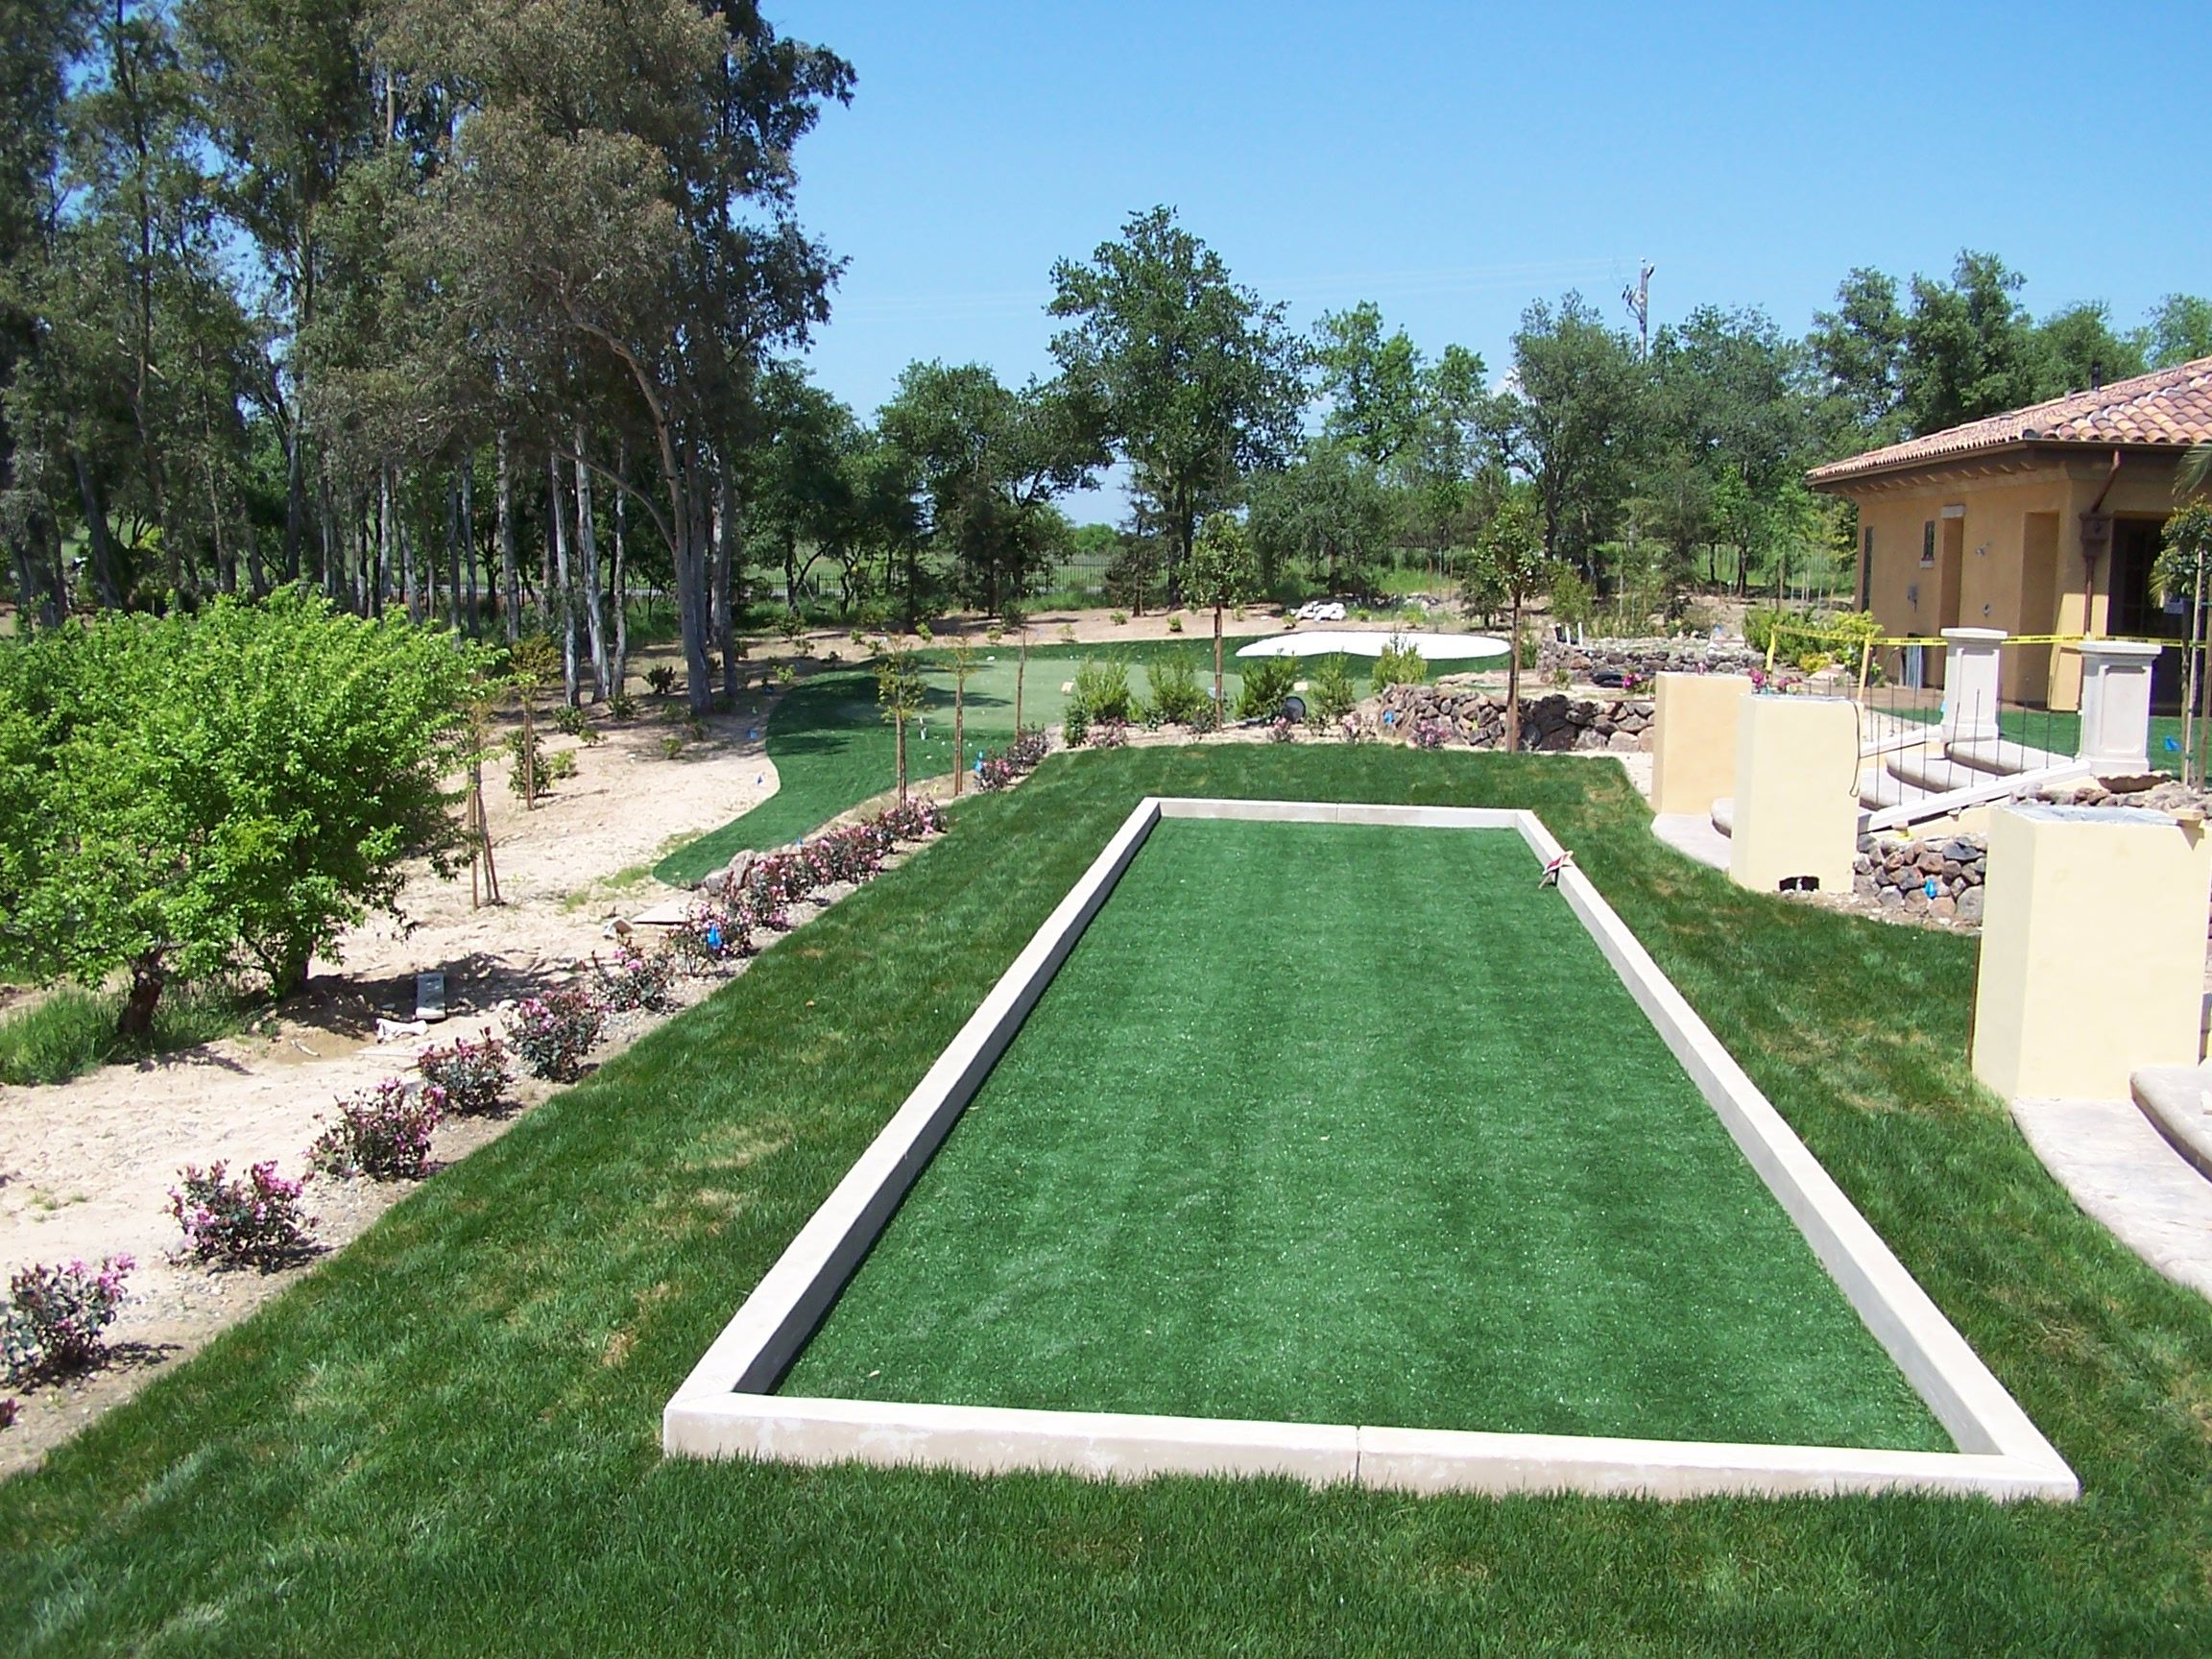 Bocce court at home boccecourt1 bocce ball court